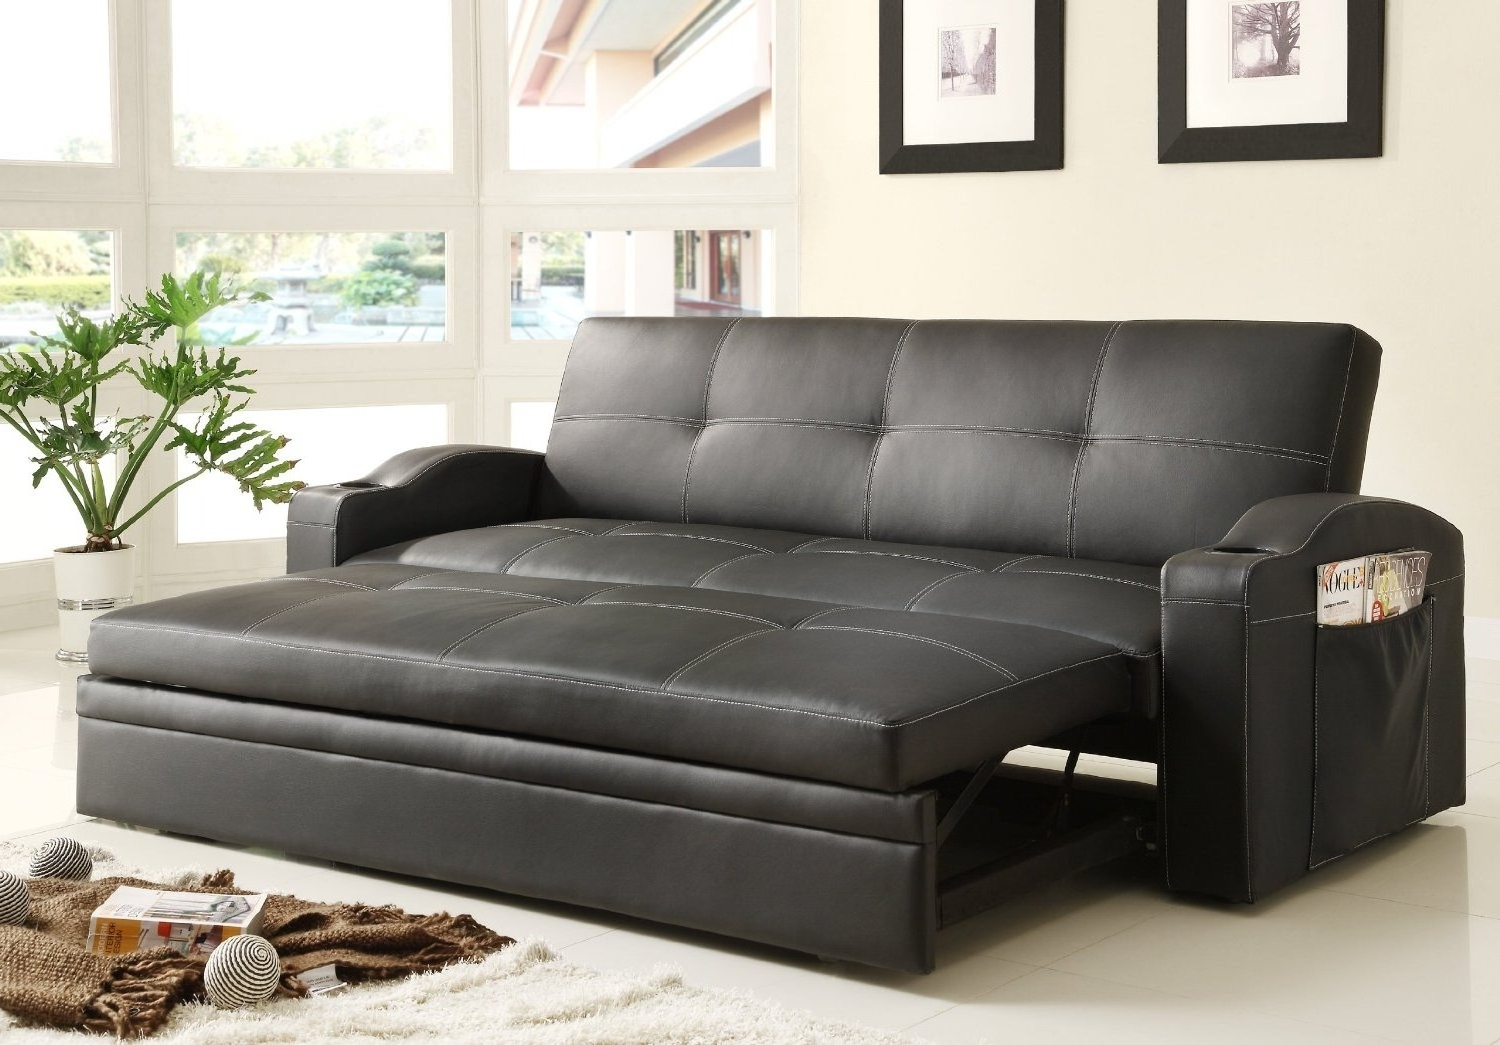 Famous Adjustable Queen Size Sofa Bed Black Color Upholstered In Black Bi Pertaining To Adjustable Sectional Sofas With Queen Bed (View 7 of 15)